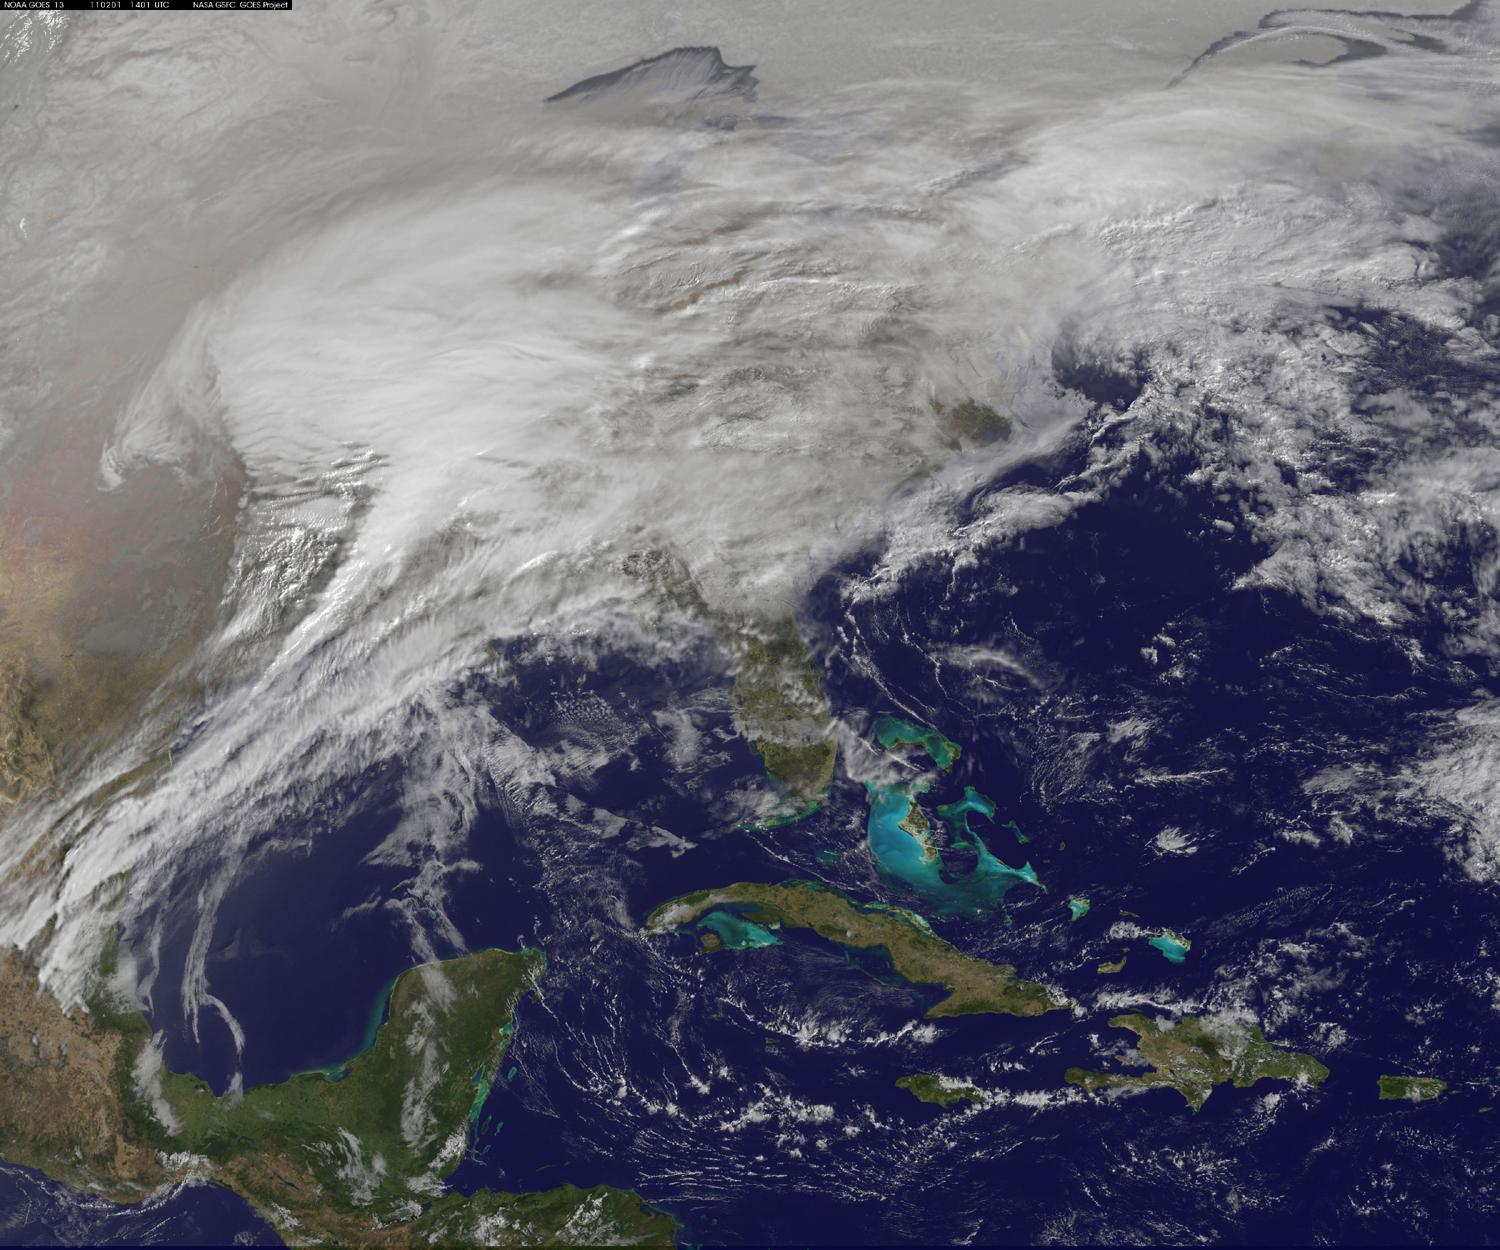 This visible image was captured by the GOES-13 satellite and shows the low pressure area stretching from the Colorado Rockies and Texas east to New England. The image shows the storm on Feb. 1 at 1401 UTC (9:01 a.m. EST) by the NASA GOES Project, located at NASA's Goddard Space Flight Center in Greenbelt, Md. The GOES series of satellites are operated by NOAA.  Credit: NOAA/NASA GOES Project